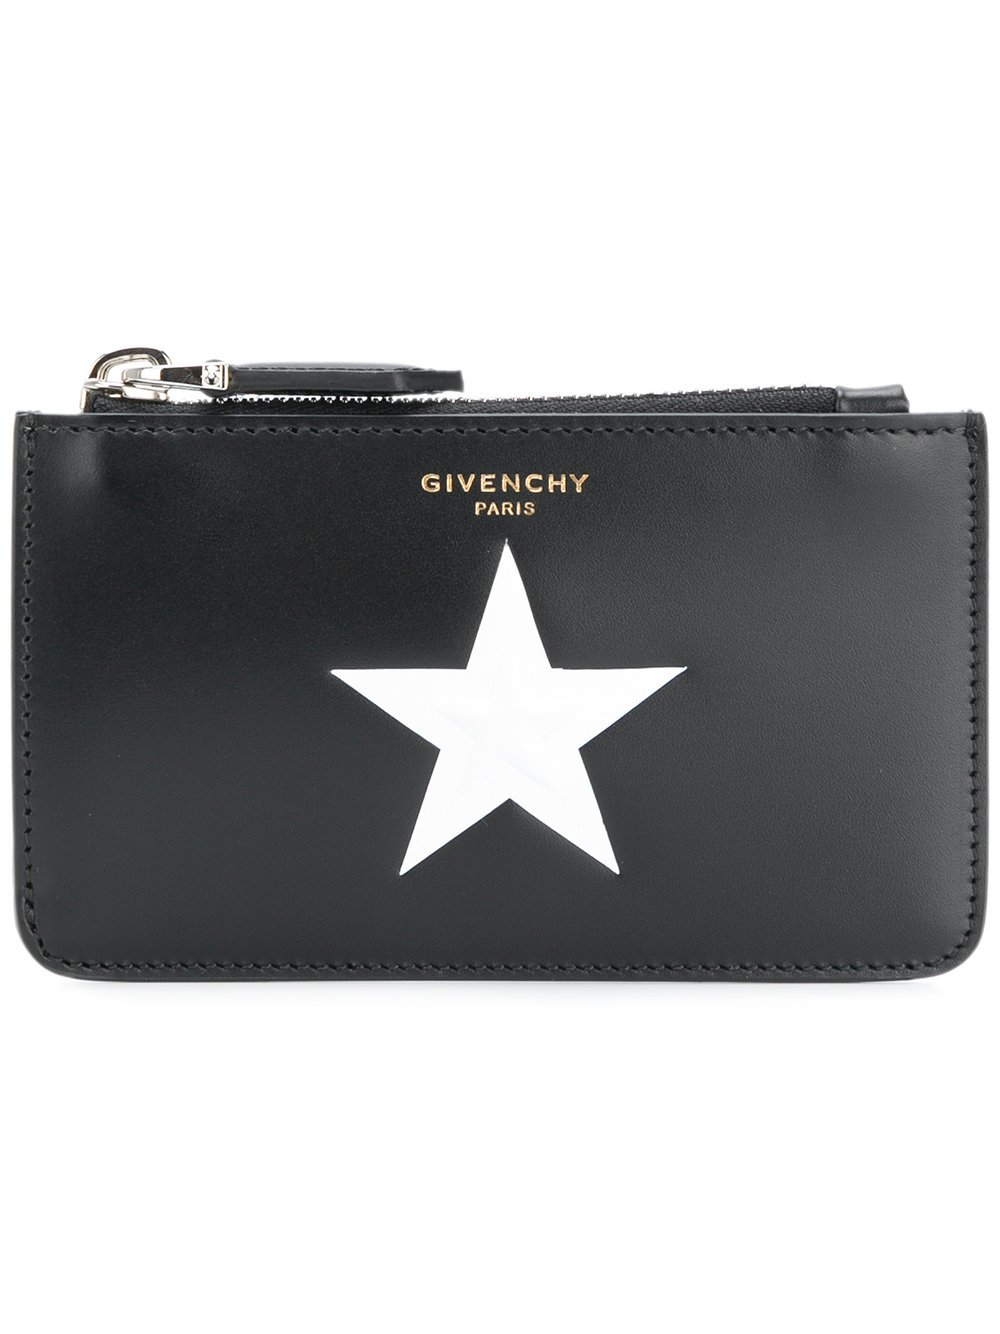 Givenchy Men's Bk6011k00e001 Black Leather Wallet